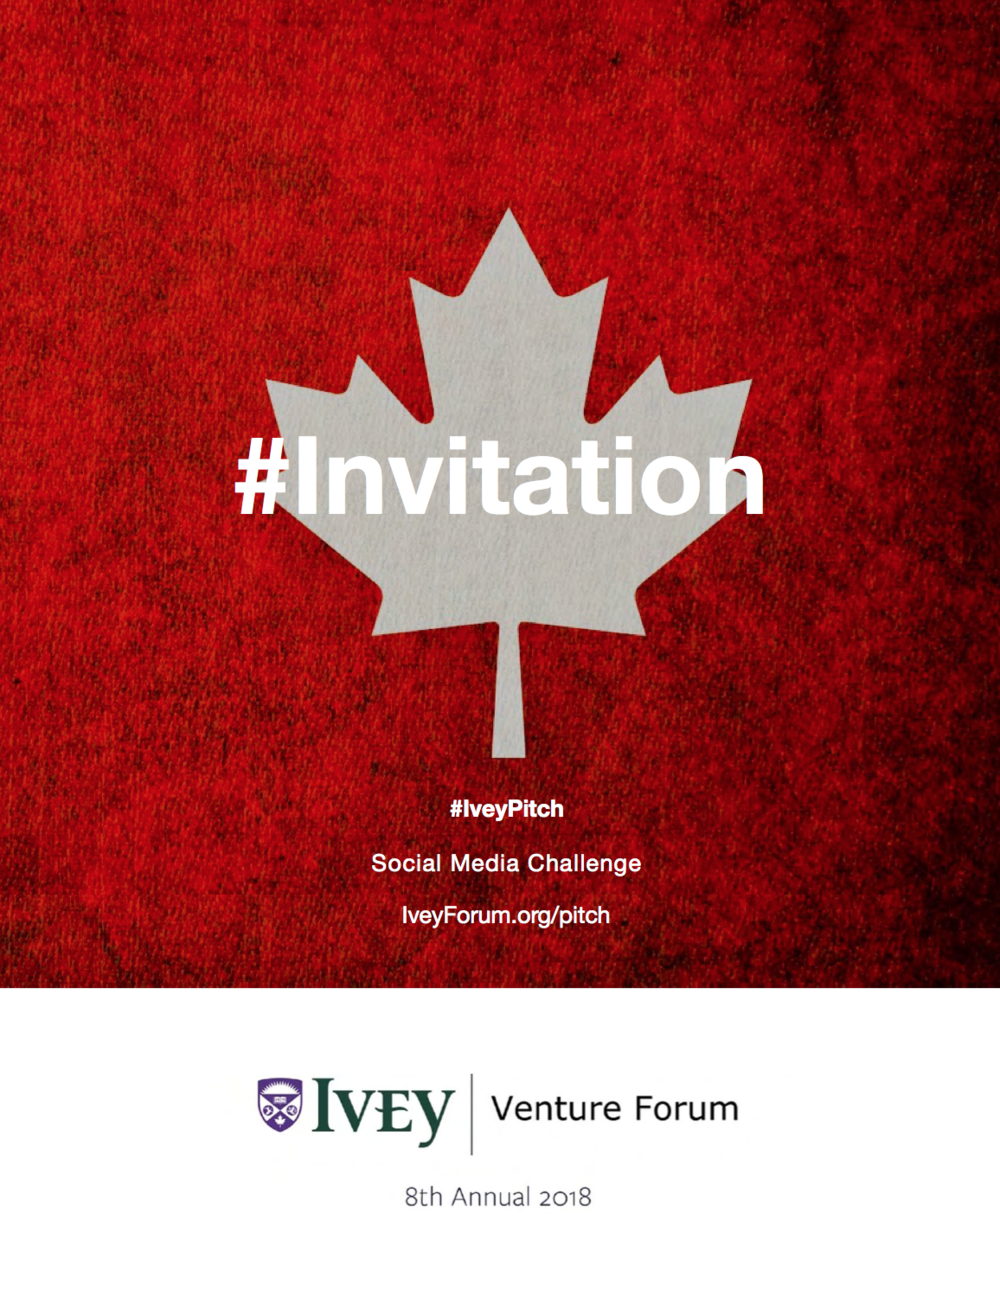 Invitation to #IveyPitch